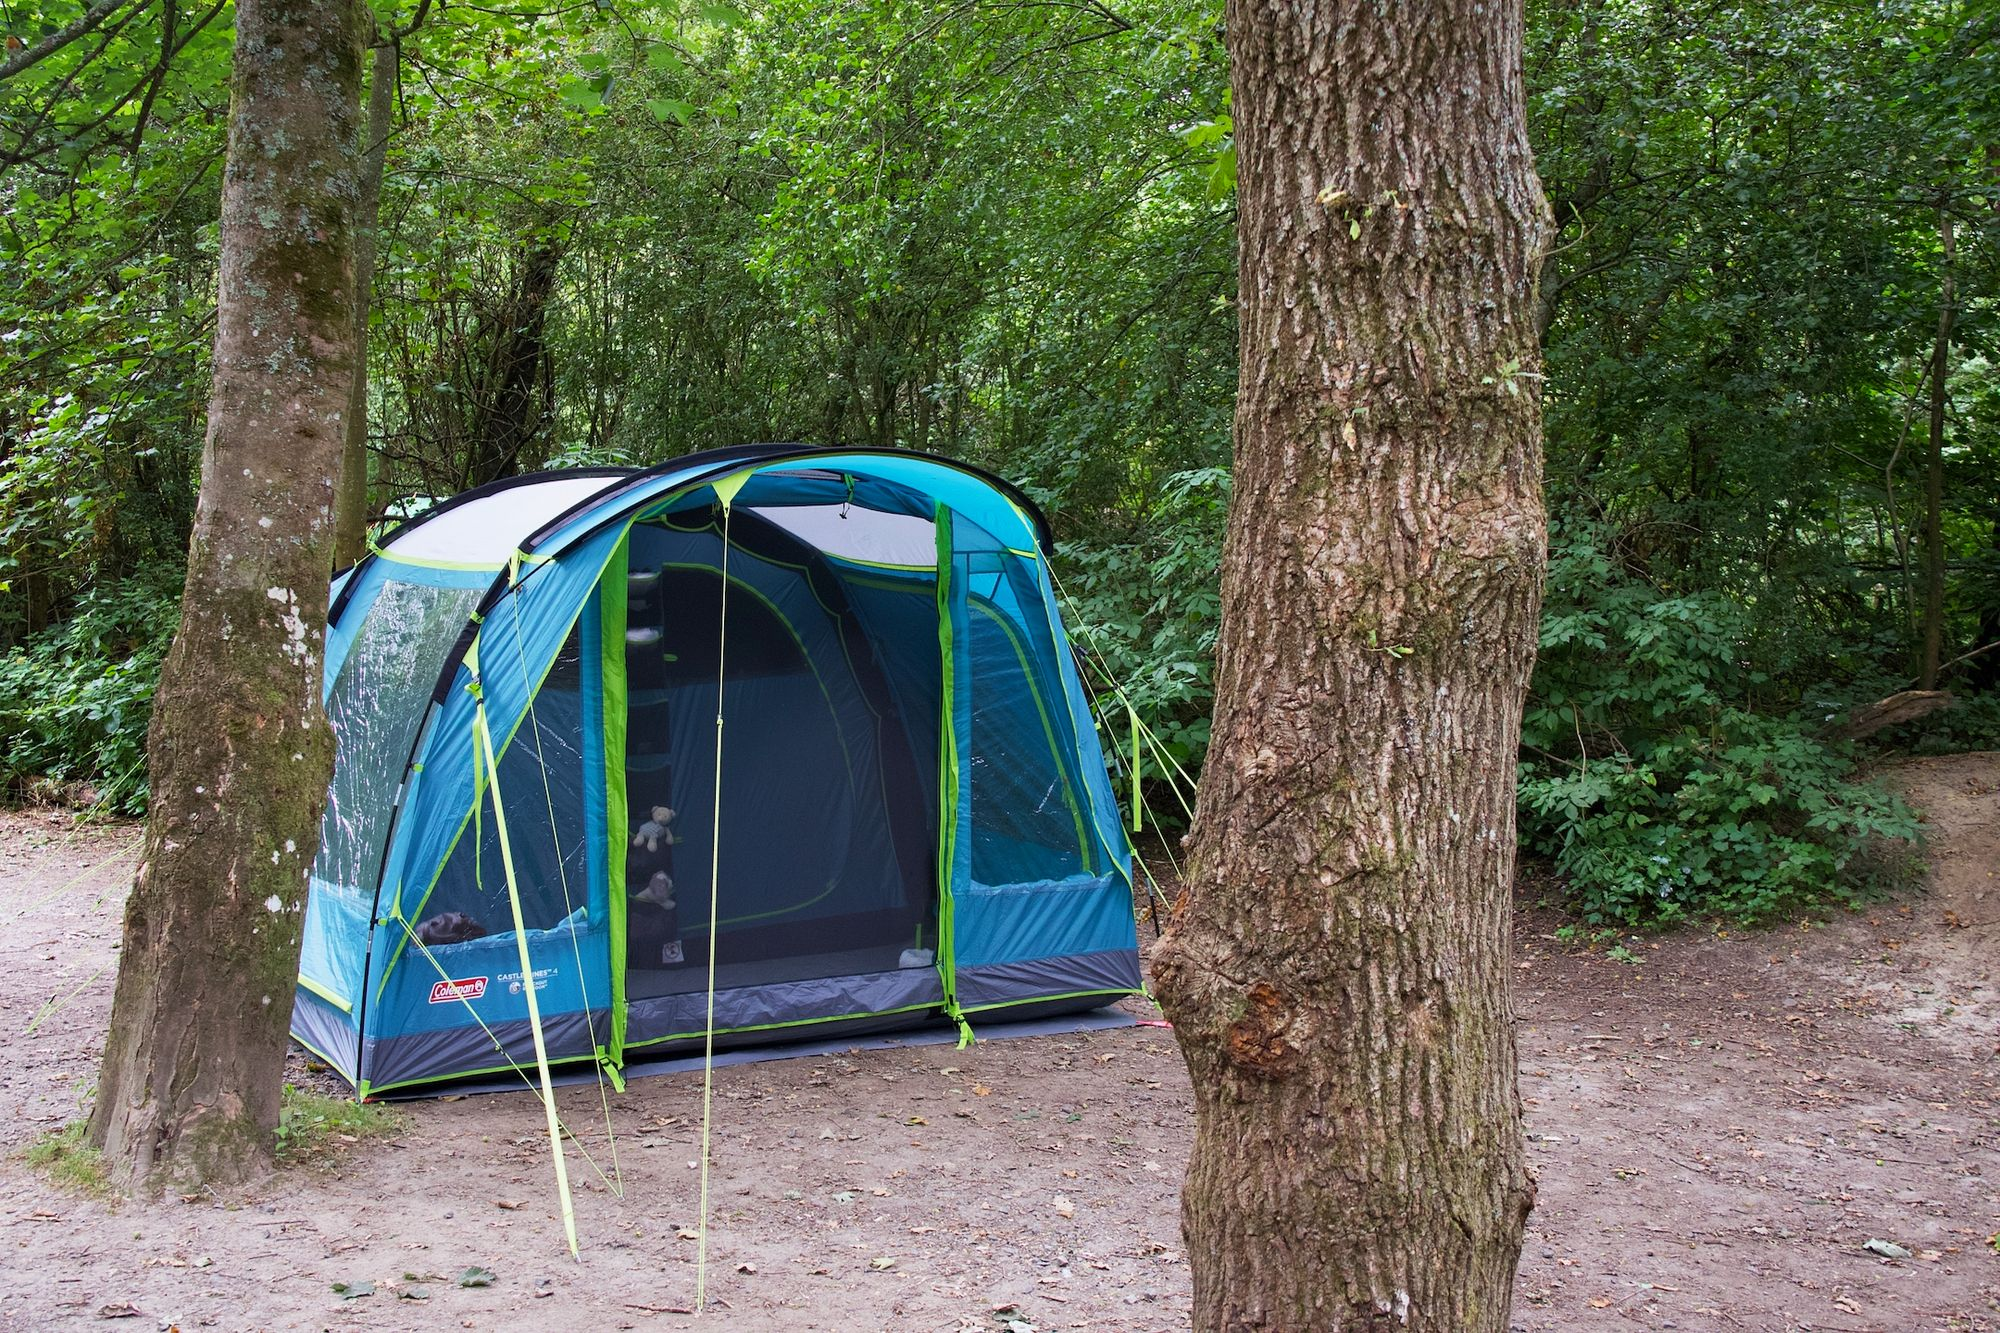 A tent in the woods at Blackberry Wood campsite in Sussex.